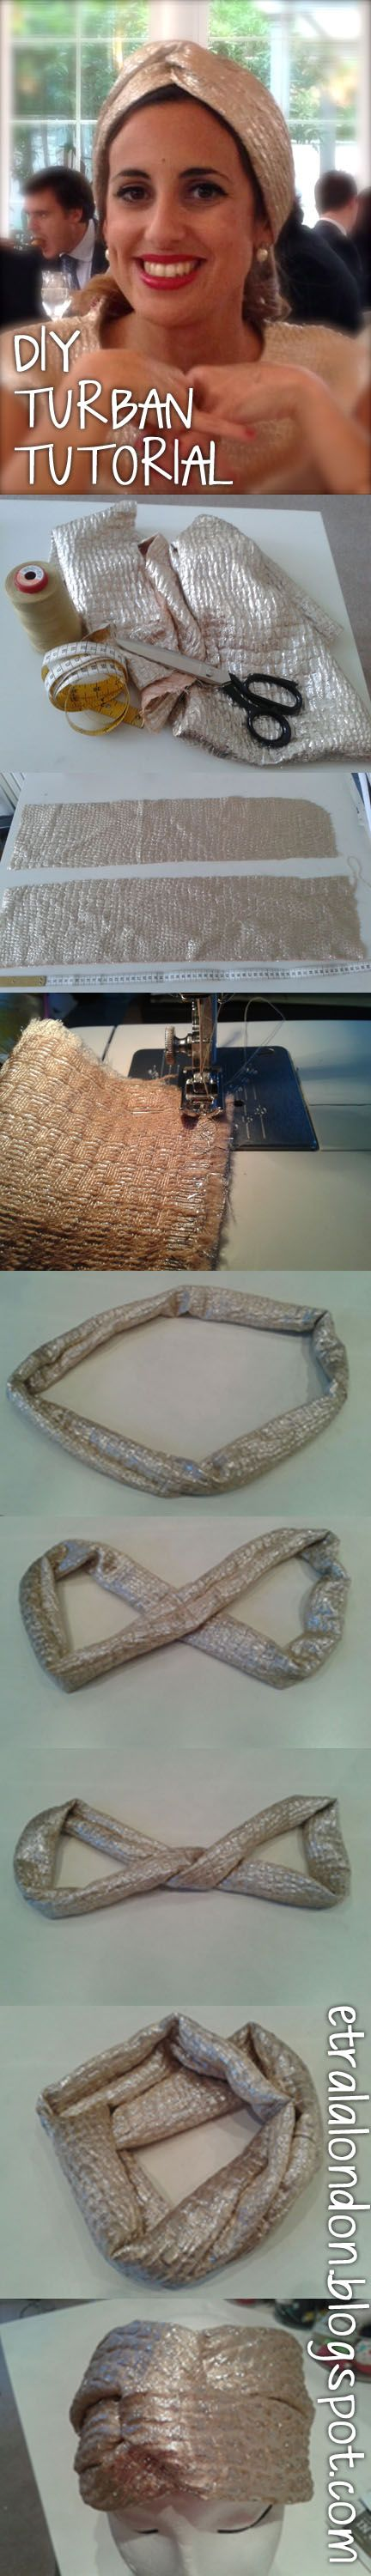 GREAT TUTORIAL - easy ladies turban!  DIY: Turban tutorial!